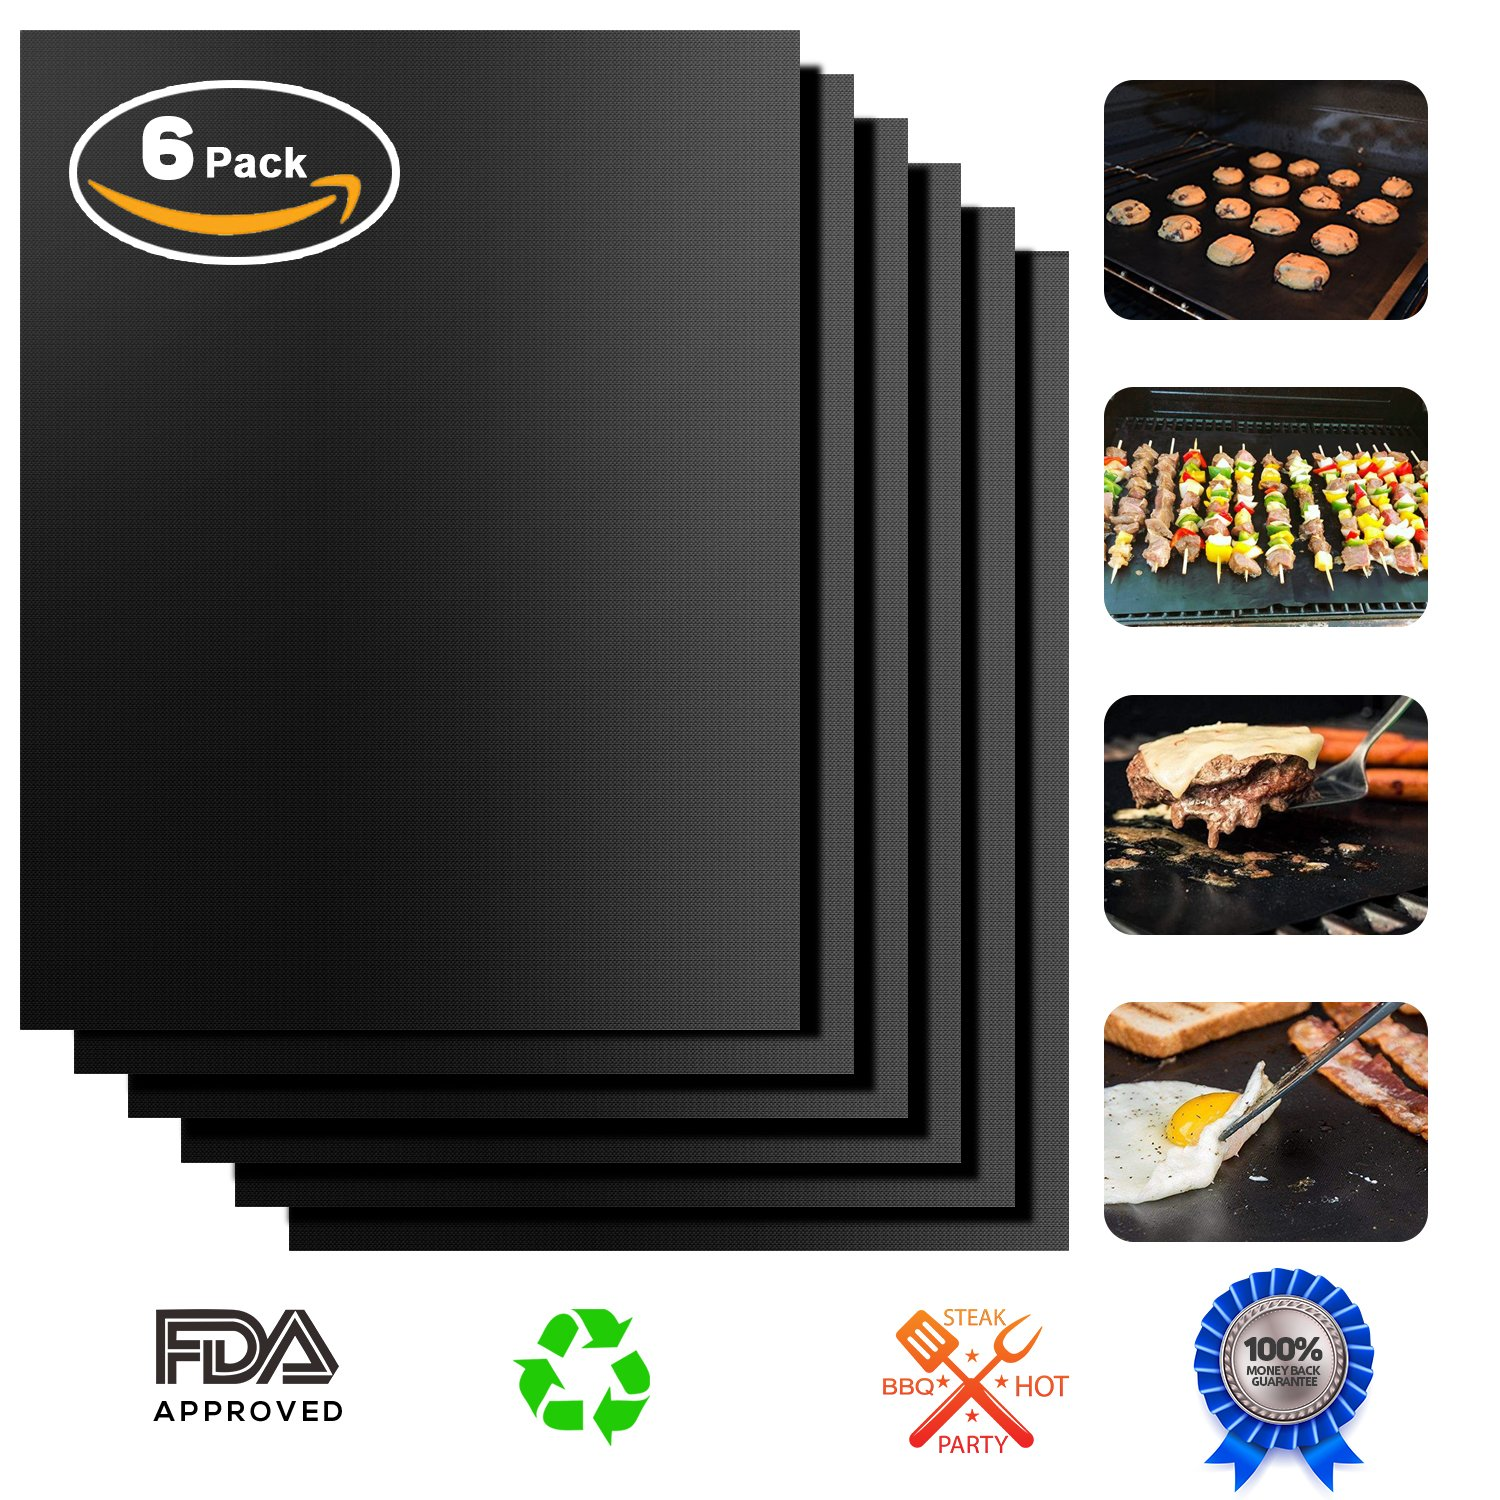 Positivelife BBQ Grill Mat Pack of 6, Non-stick Barbecue Grill Pad & Baking Oven Mat as Electric, Gas and Charcoal Grill Mat- Heavy Duty, Reusable, Easy to Clean - Extended warranty - 15.75 x 13 Inch